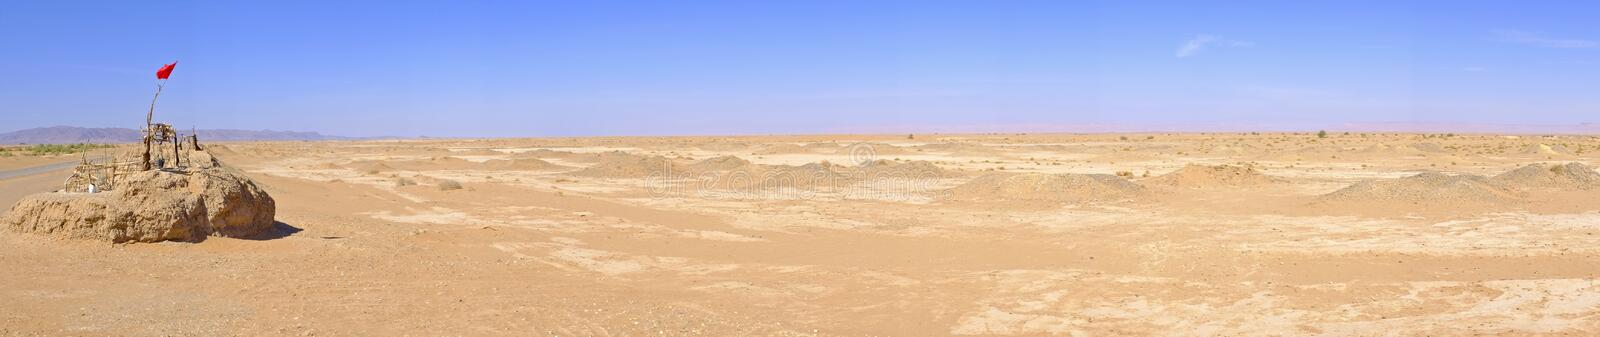 Download Panorama With Water Well In Sahara Desert, Morocco Stock Image - Image: 36243223